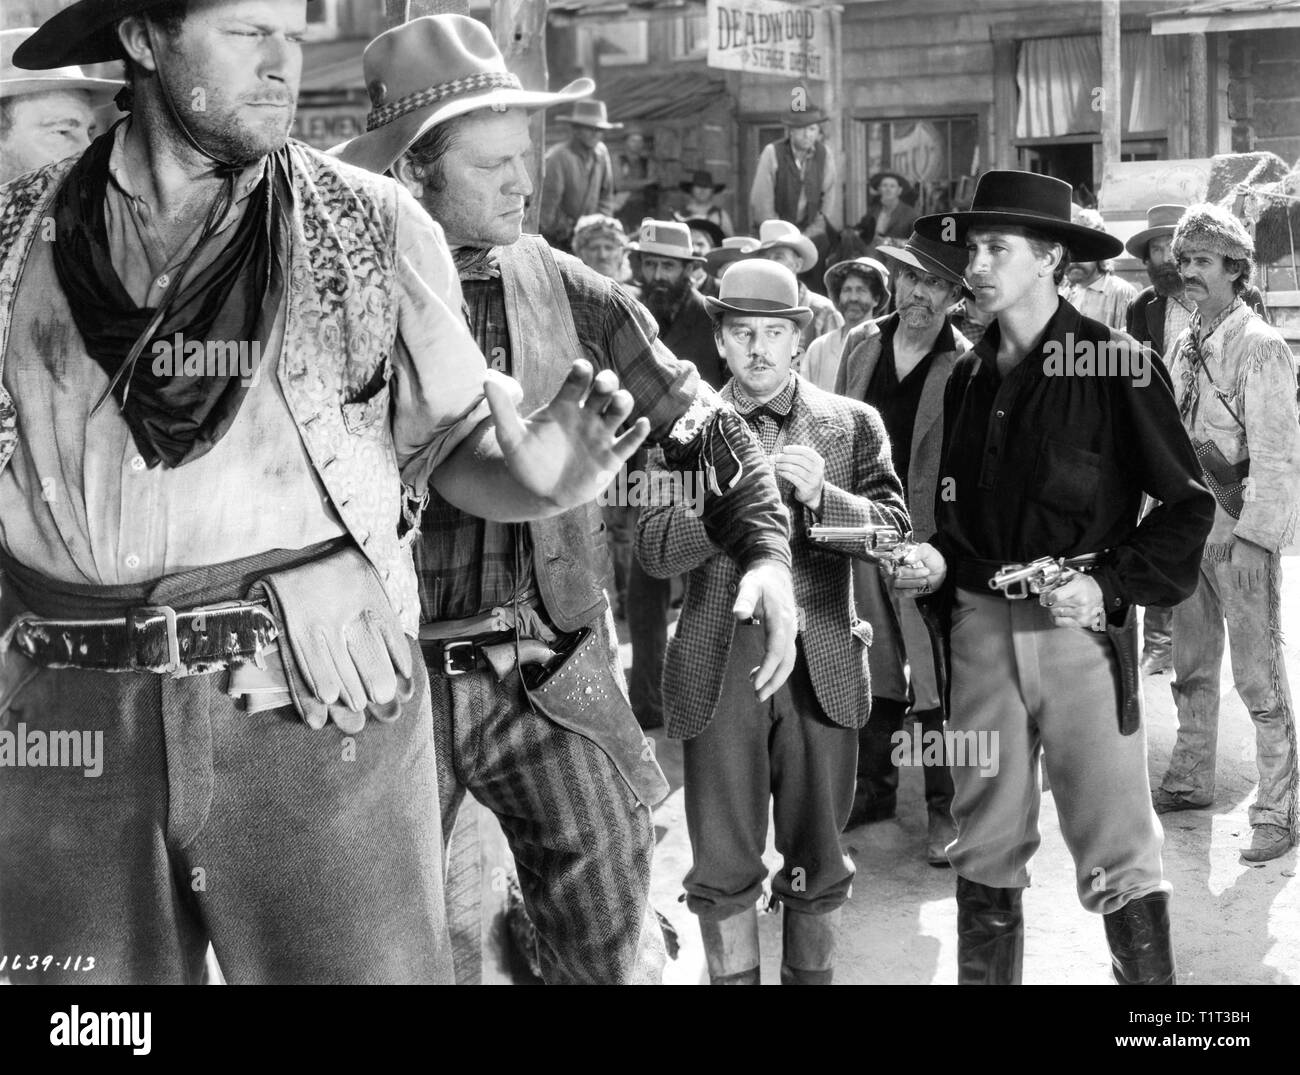 Gary Cooper as Wild Bill Hickok Porter Hall THE PLAINSMAN 1936 director Cecil B. DeMille Paramount Pictures - Stock Image